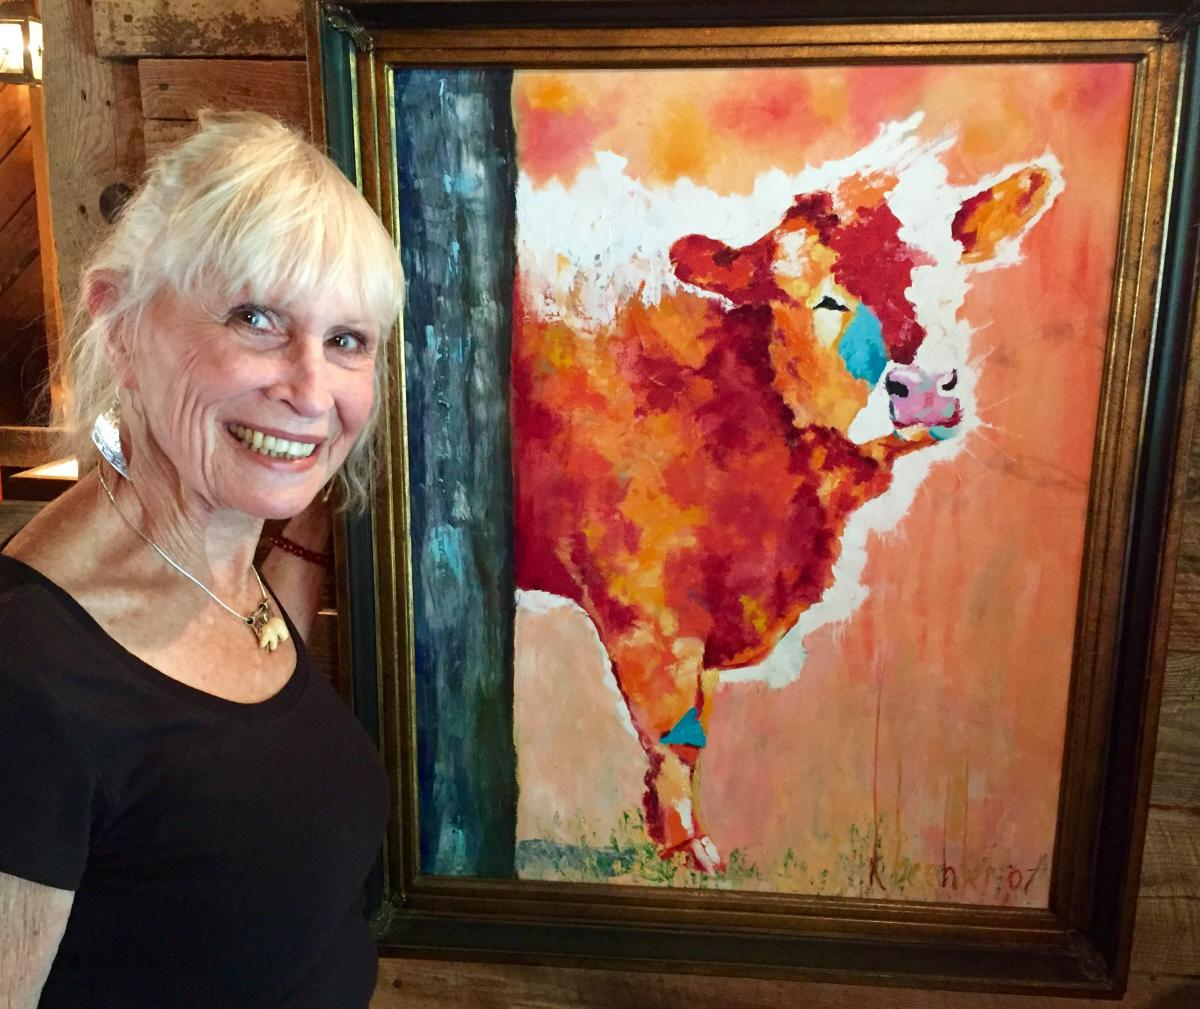 Photograph of artist Penny Bradley at her easel